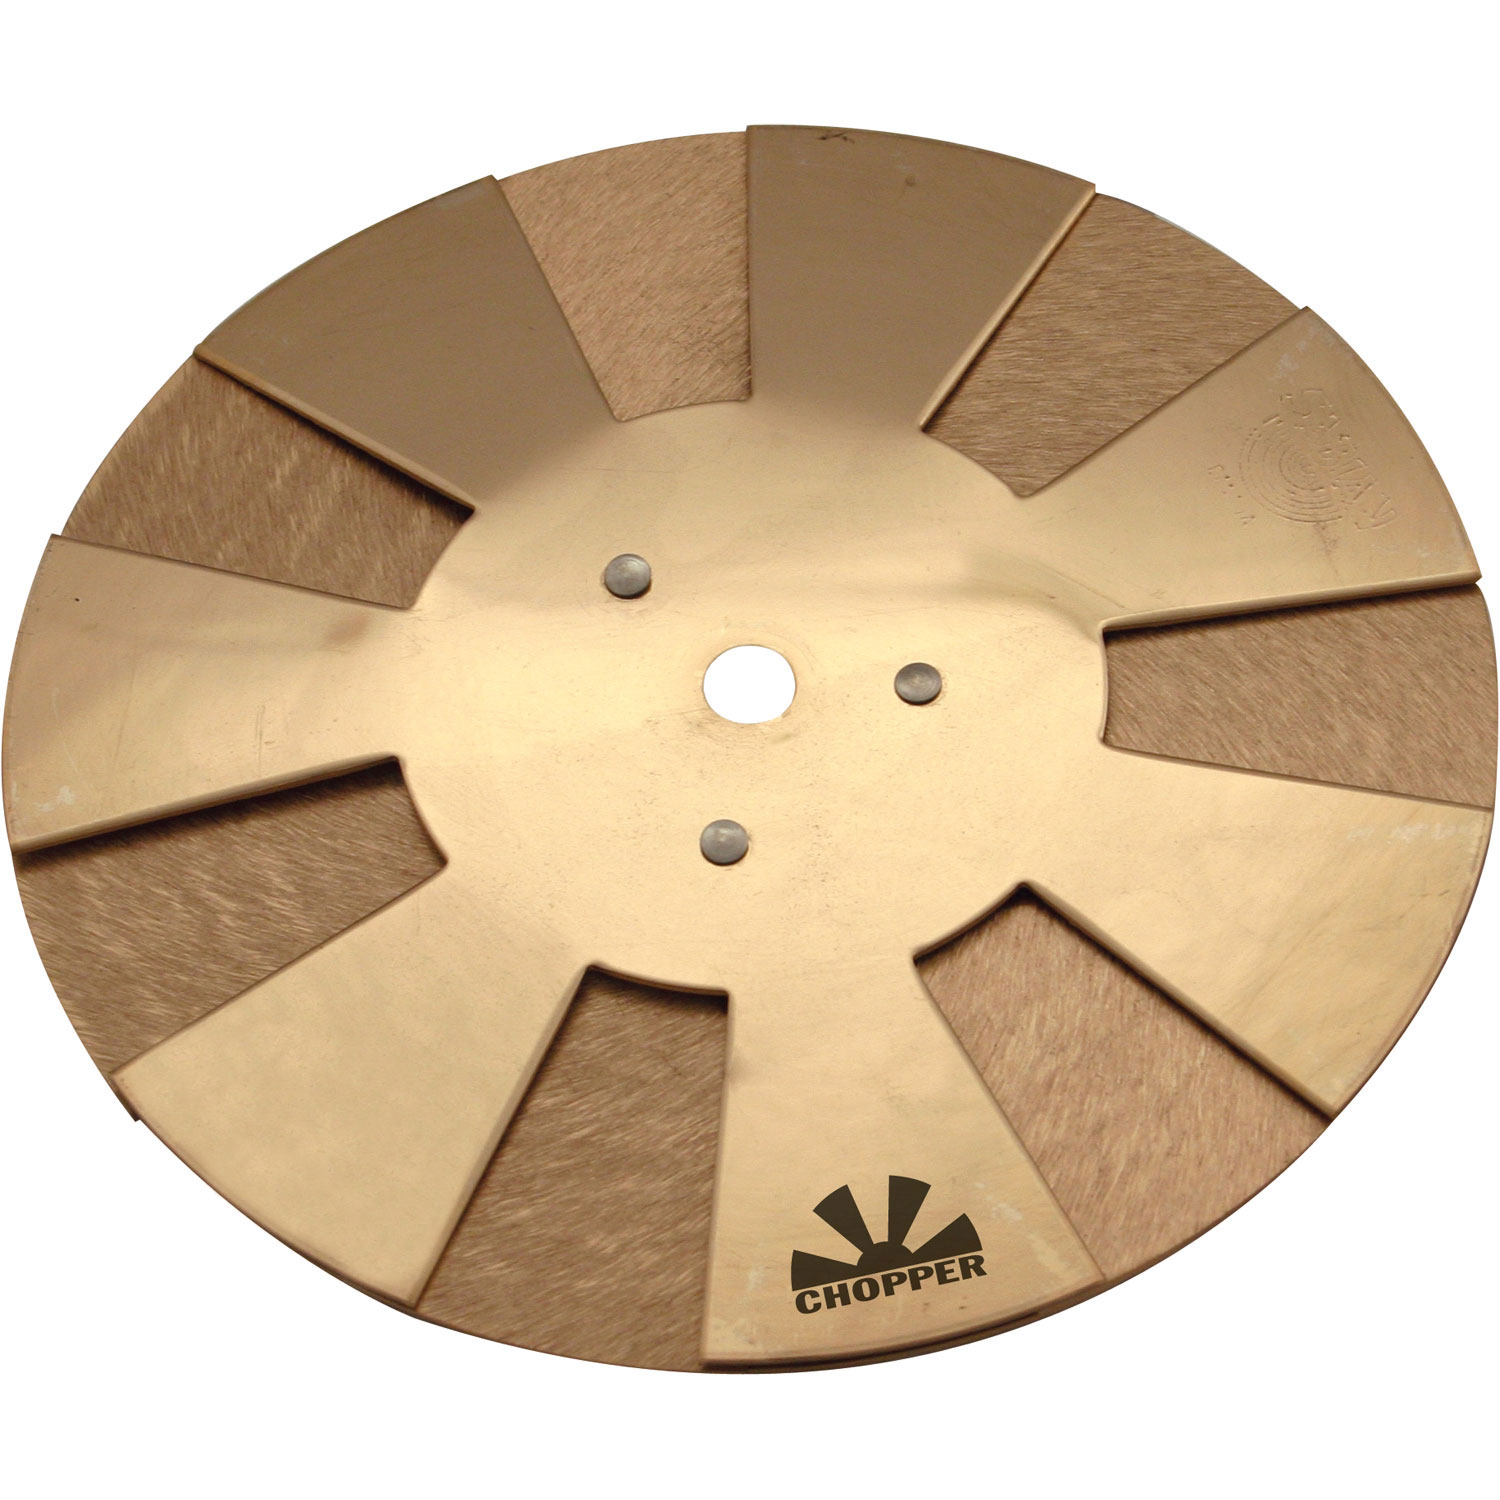 "Sabian 10"" Chopper with Natural Finish"